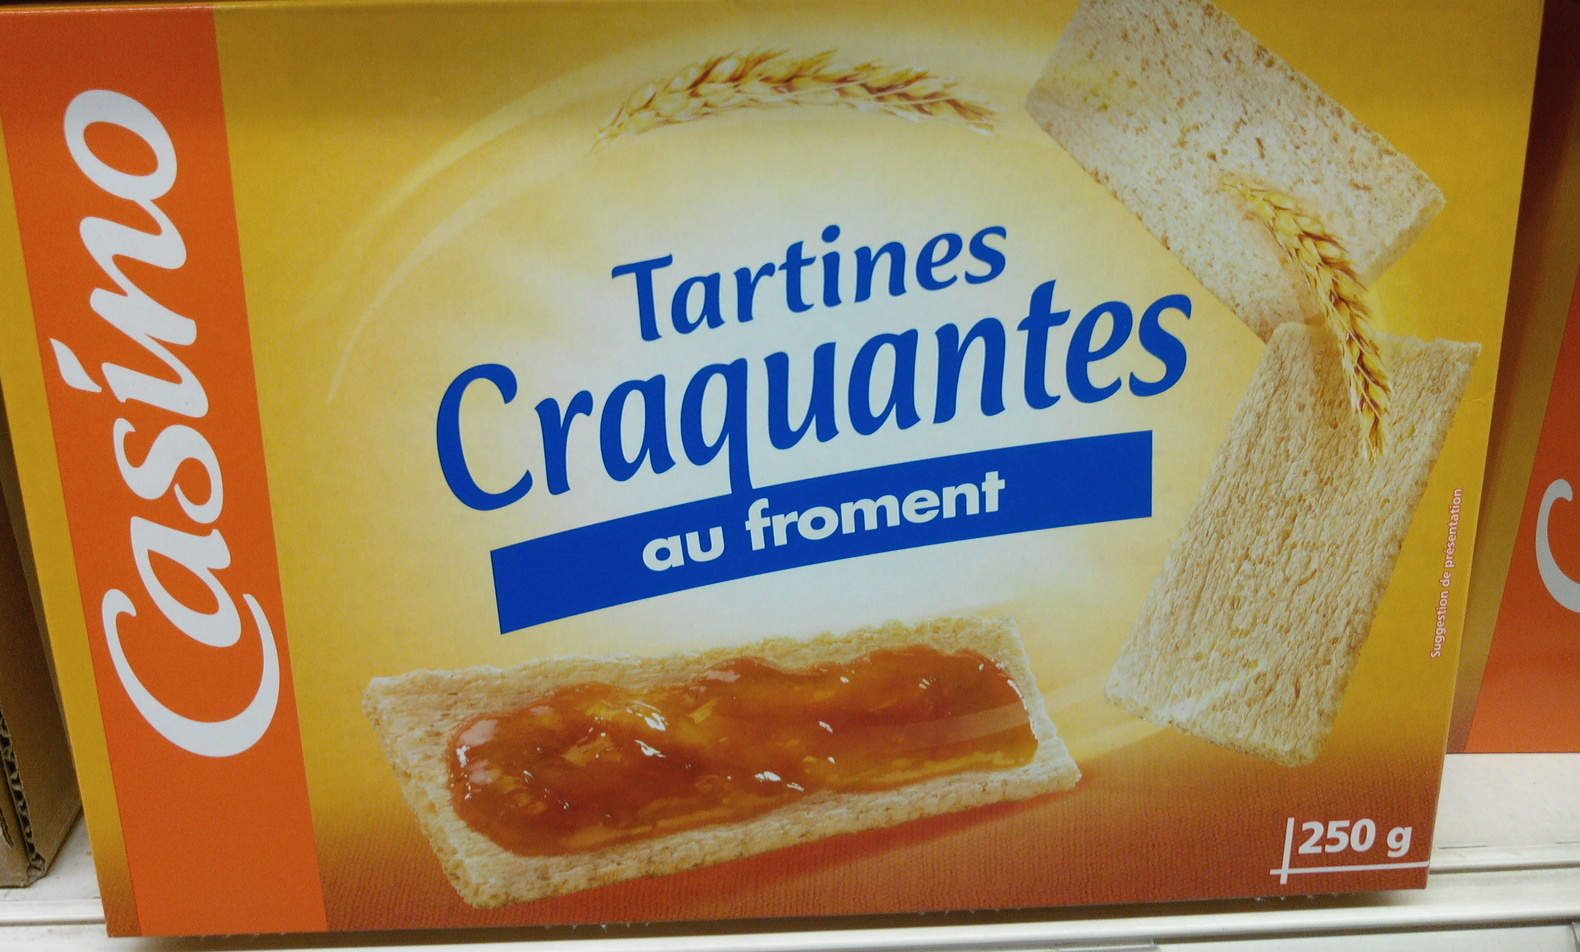 Tartines craquantes au froment - Product